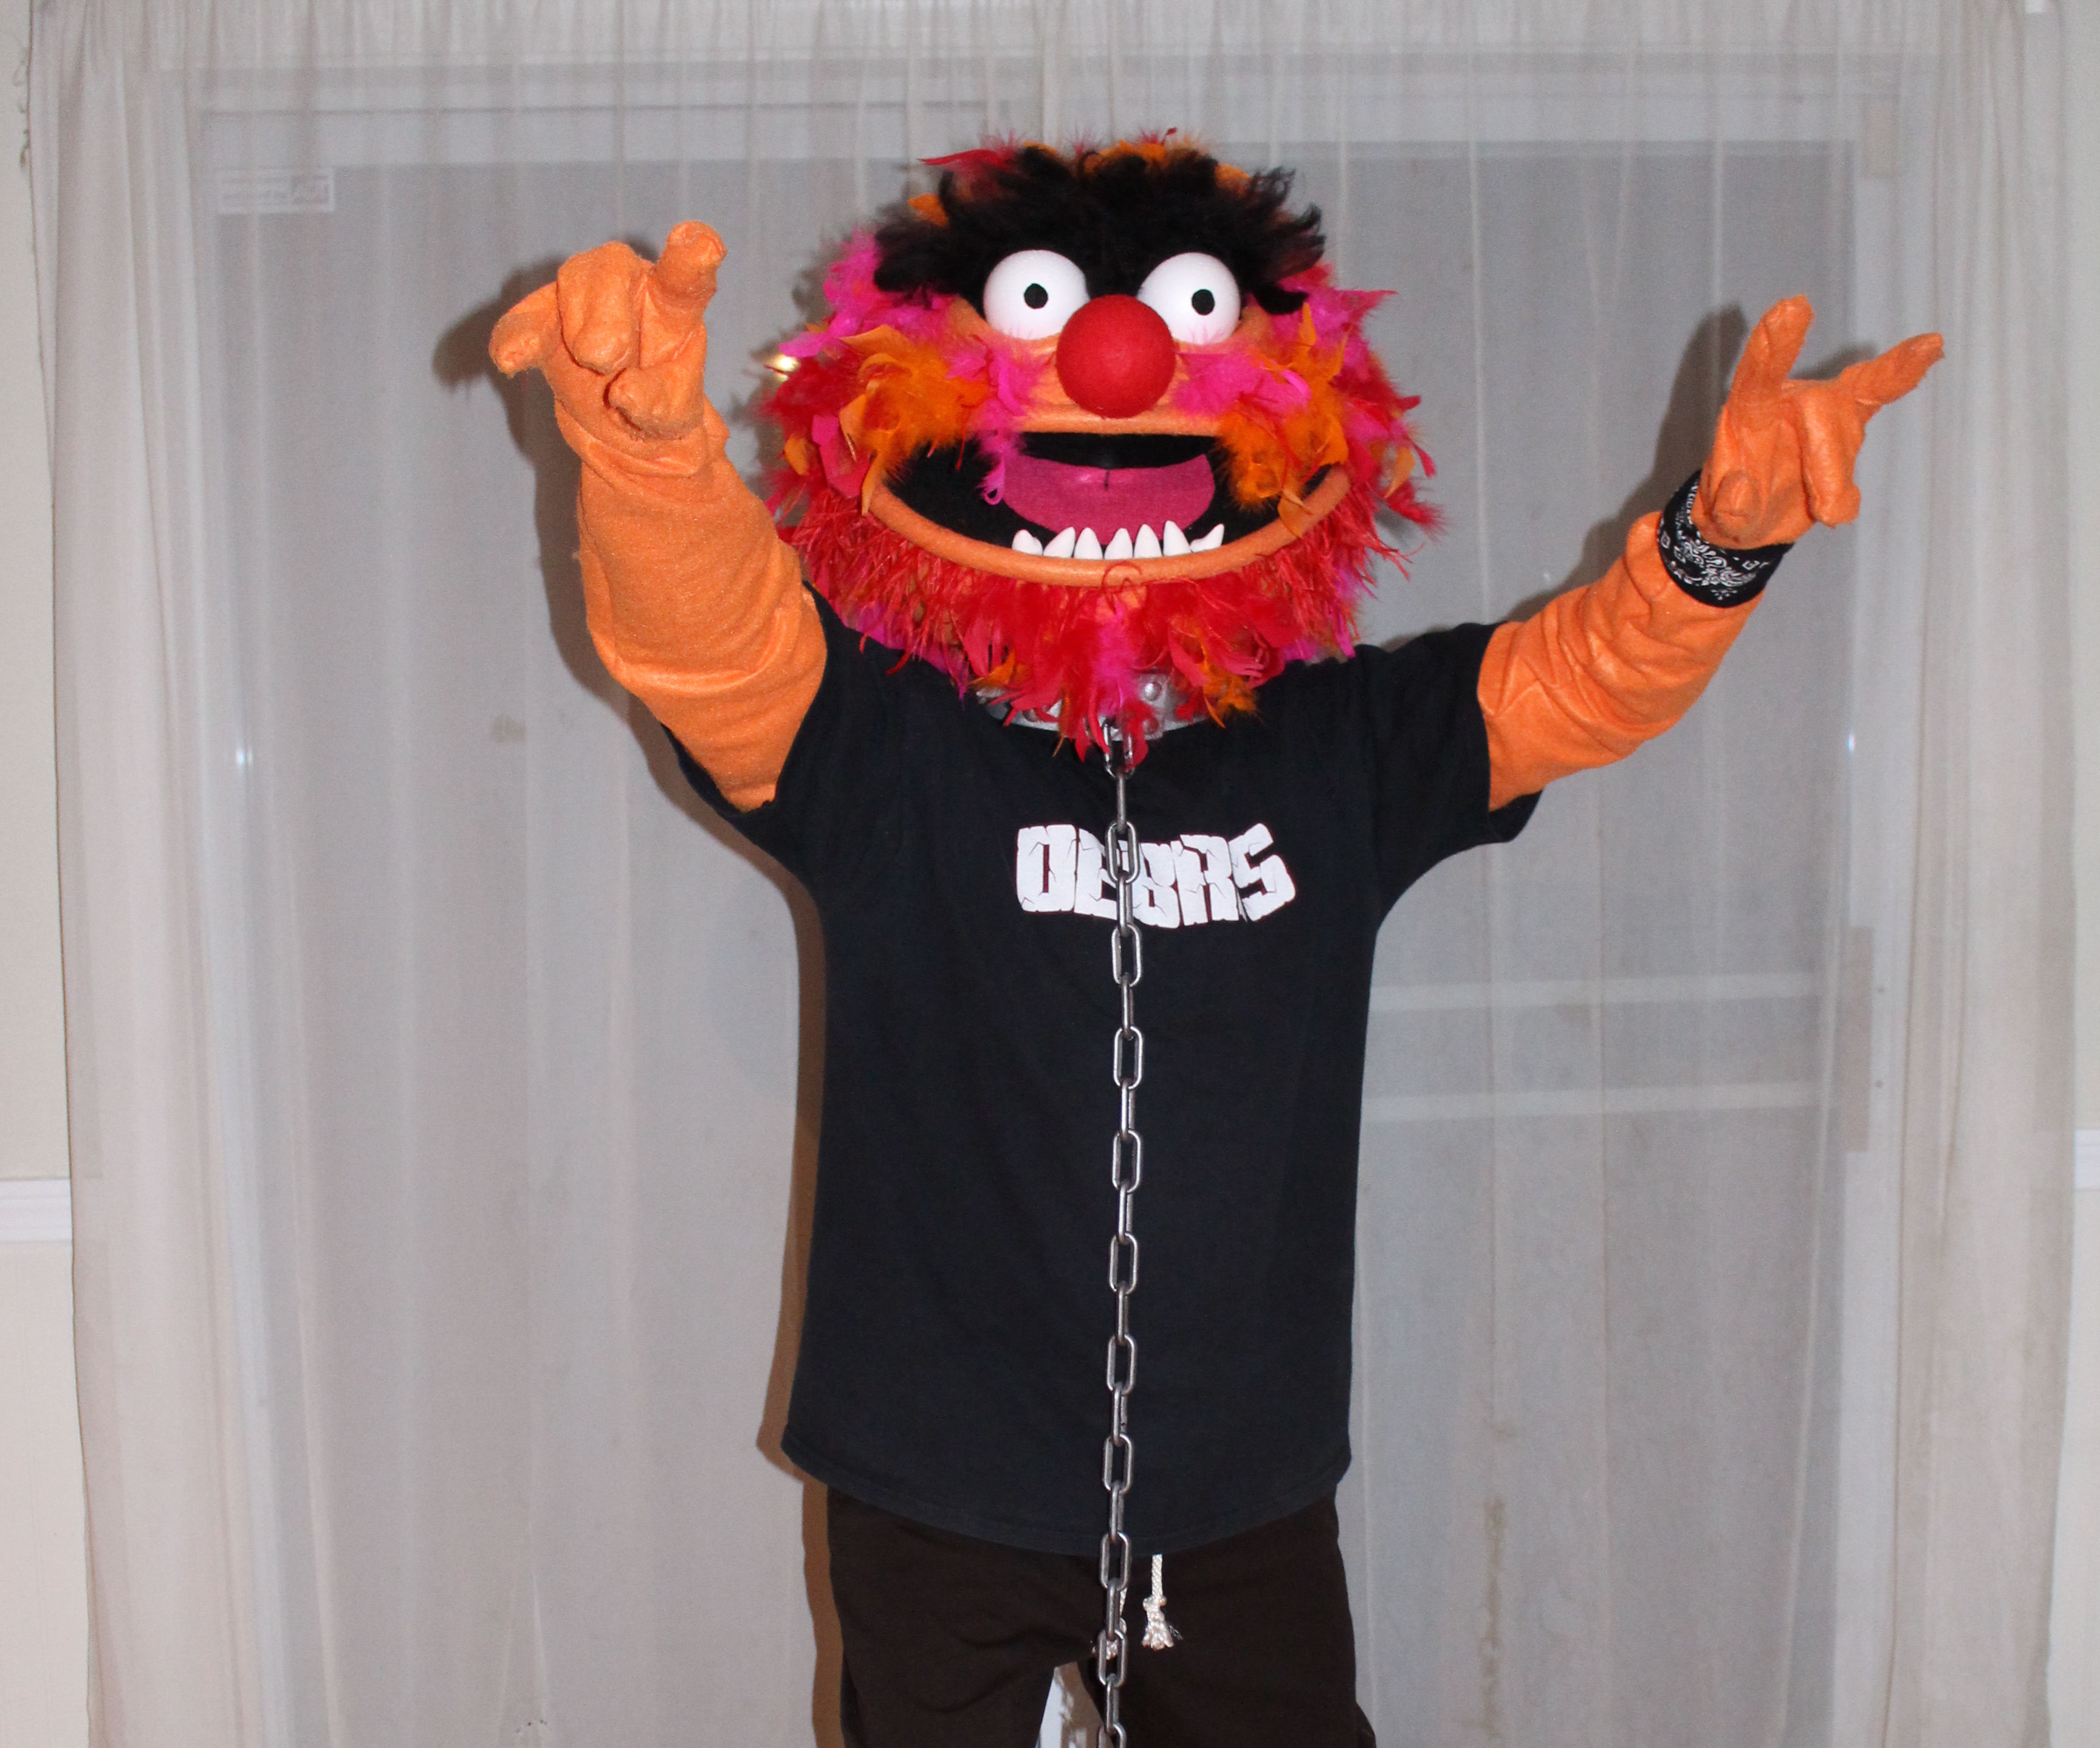 The Animal (Muppet) Costume